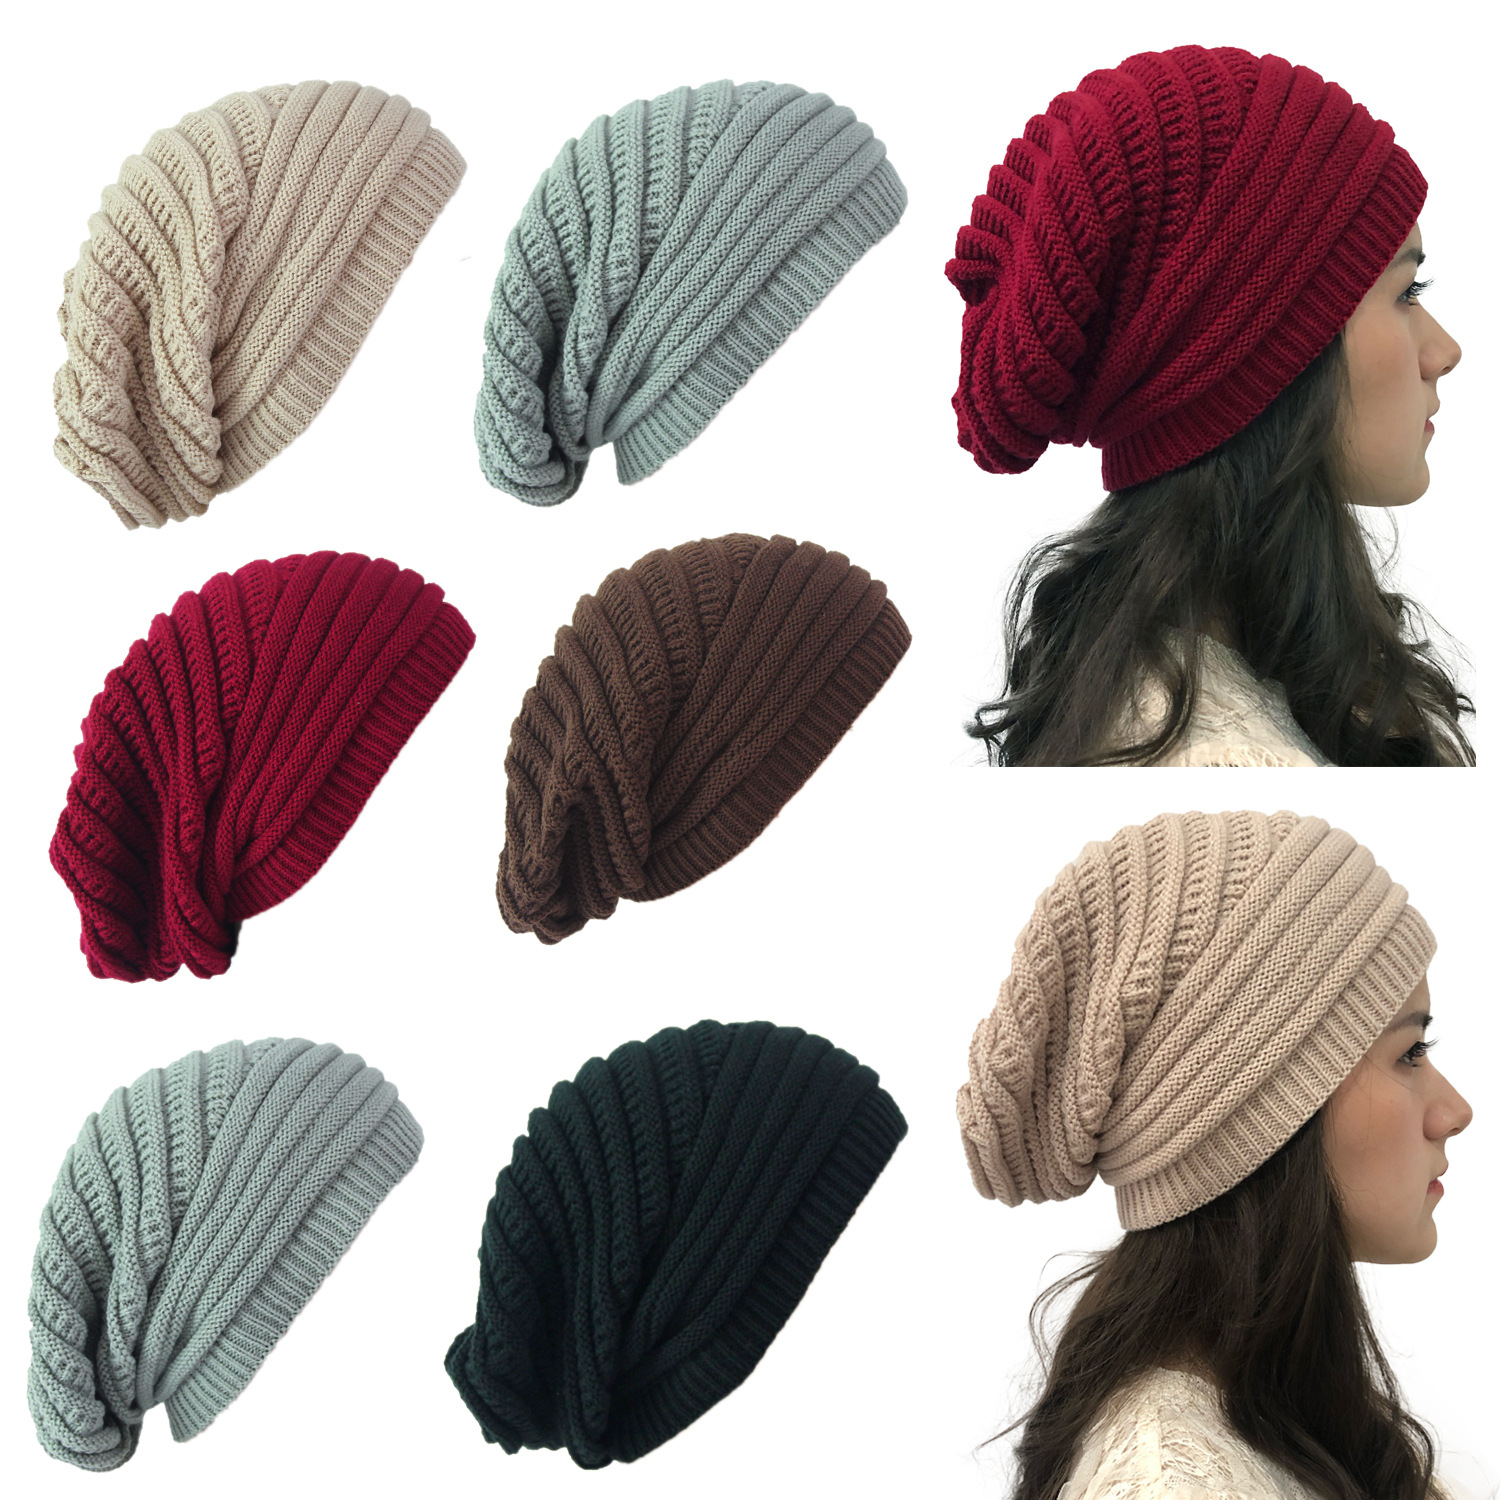 Top selling autumnwinter hats in Europe and America